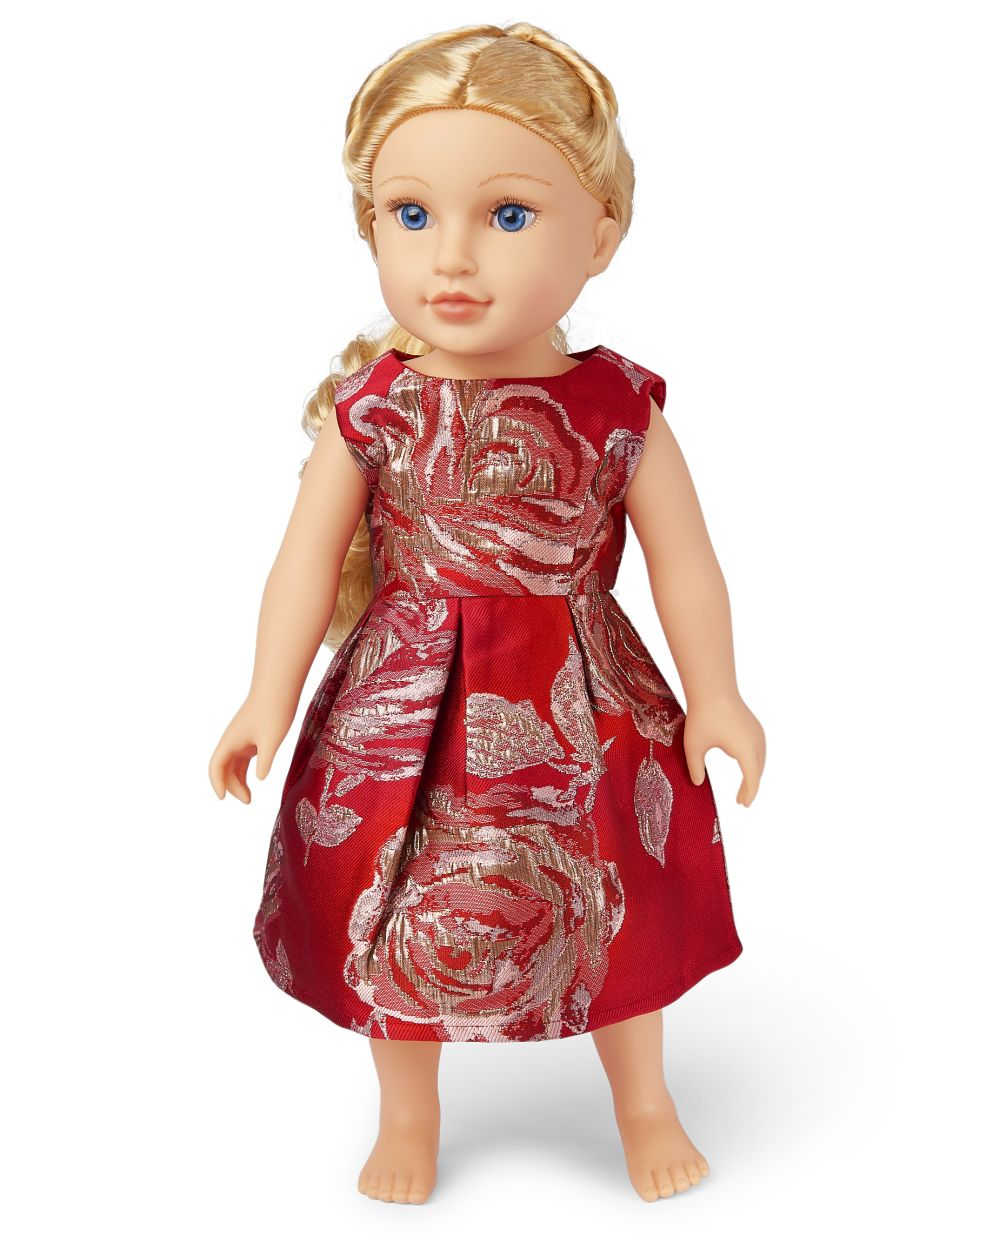 s Doll Mommy And Me Metallic Rose Jacquard Matching Dress - Red - The Children's Place